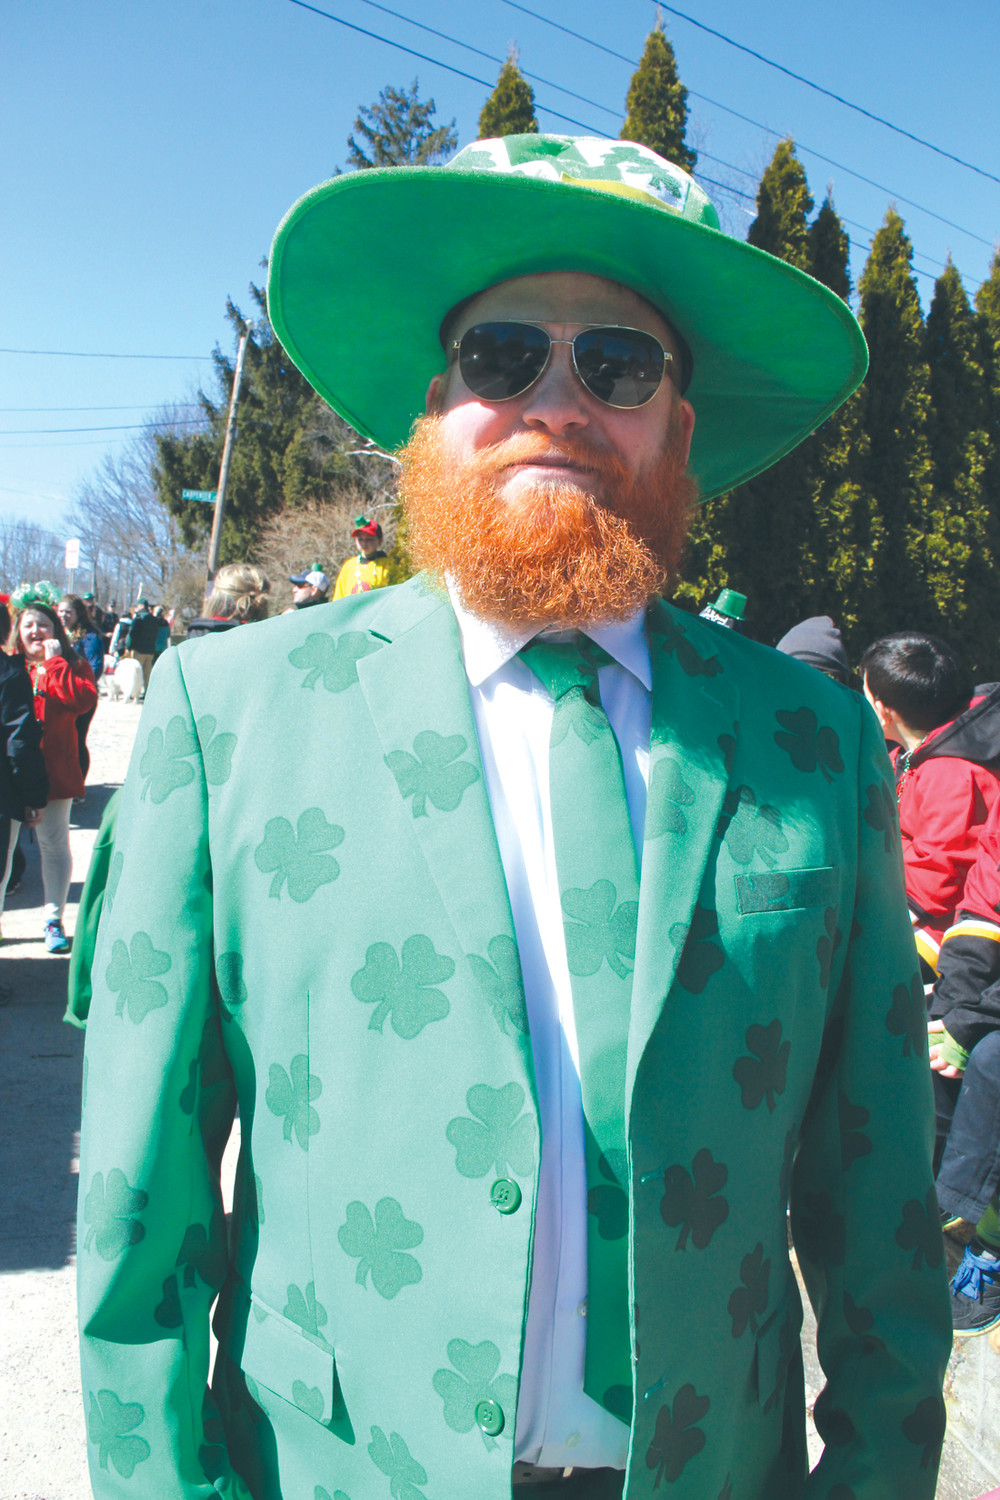 MISTER GREEN: Sean Patrick Feeney got into the spirit and the attire for the celebration.